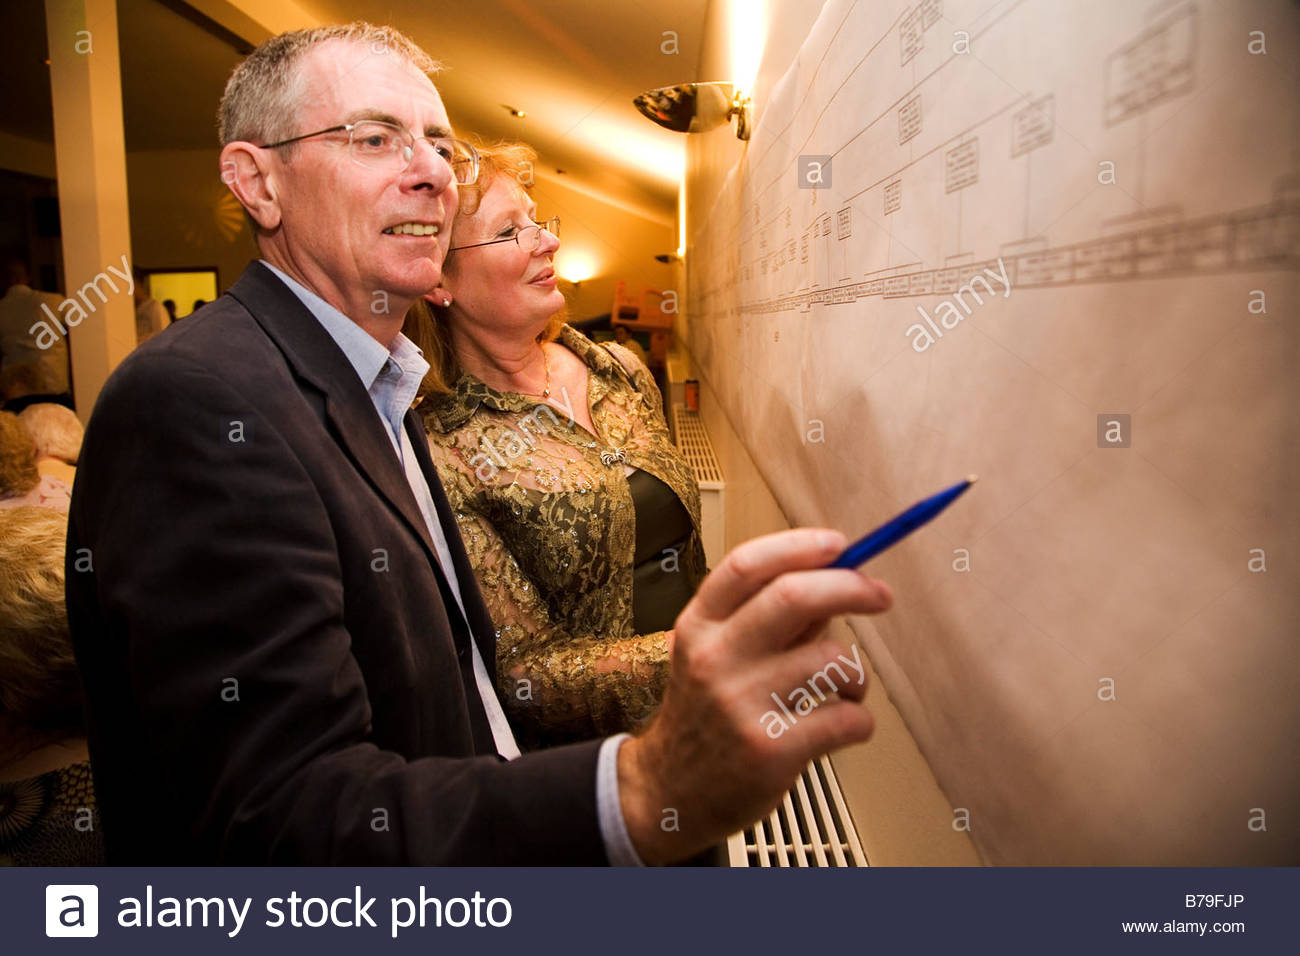 A man and a woman examine their family tree and add notations. The family memebers meet during a family re-union. - Stock Image